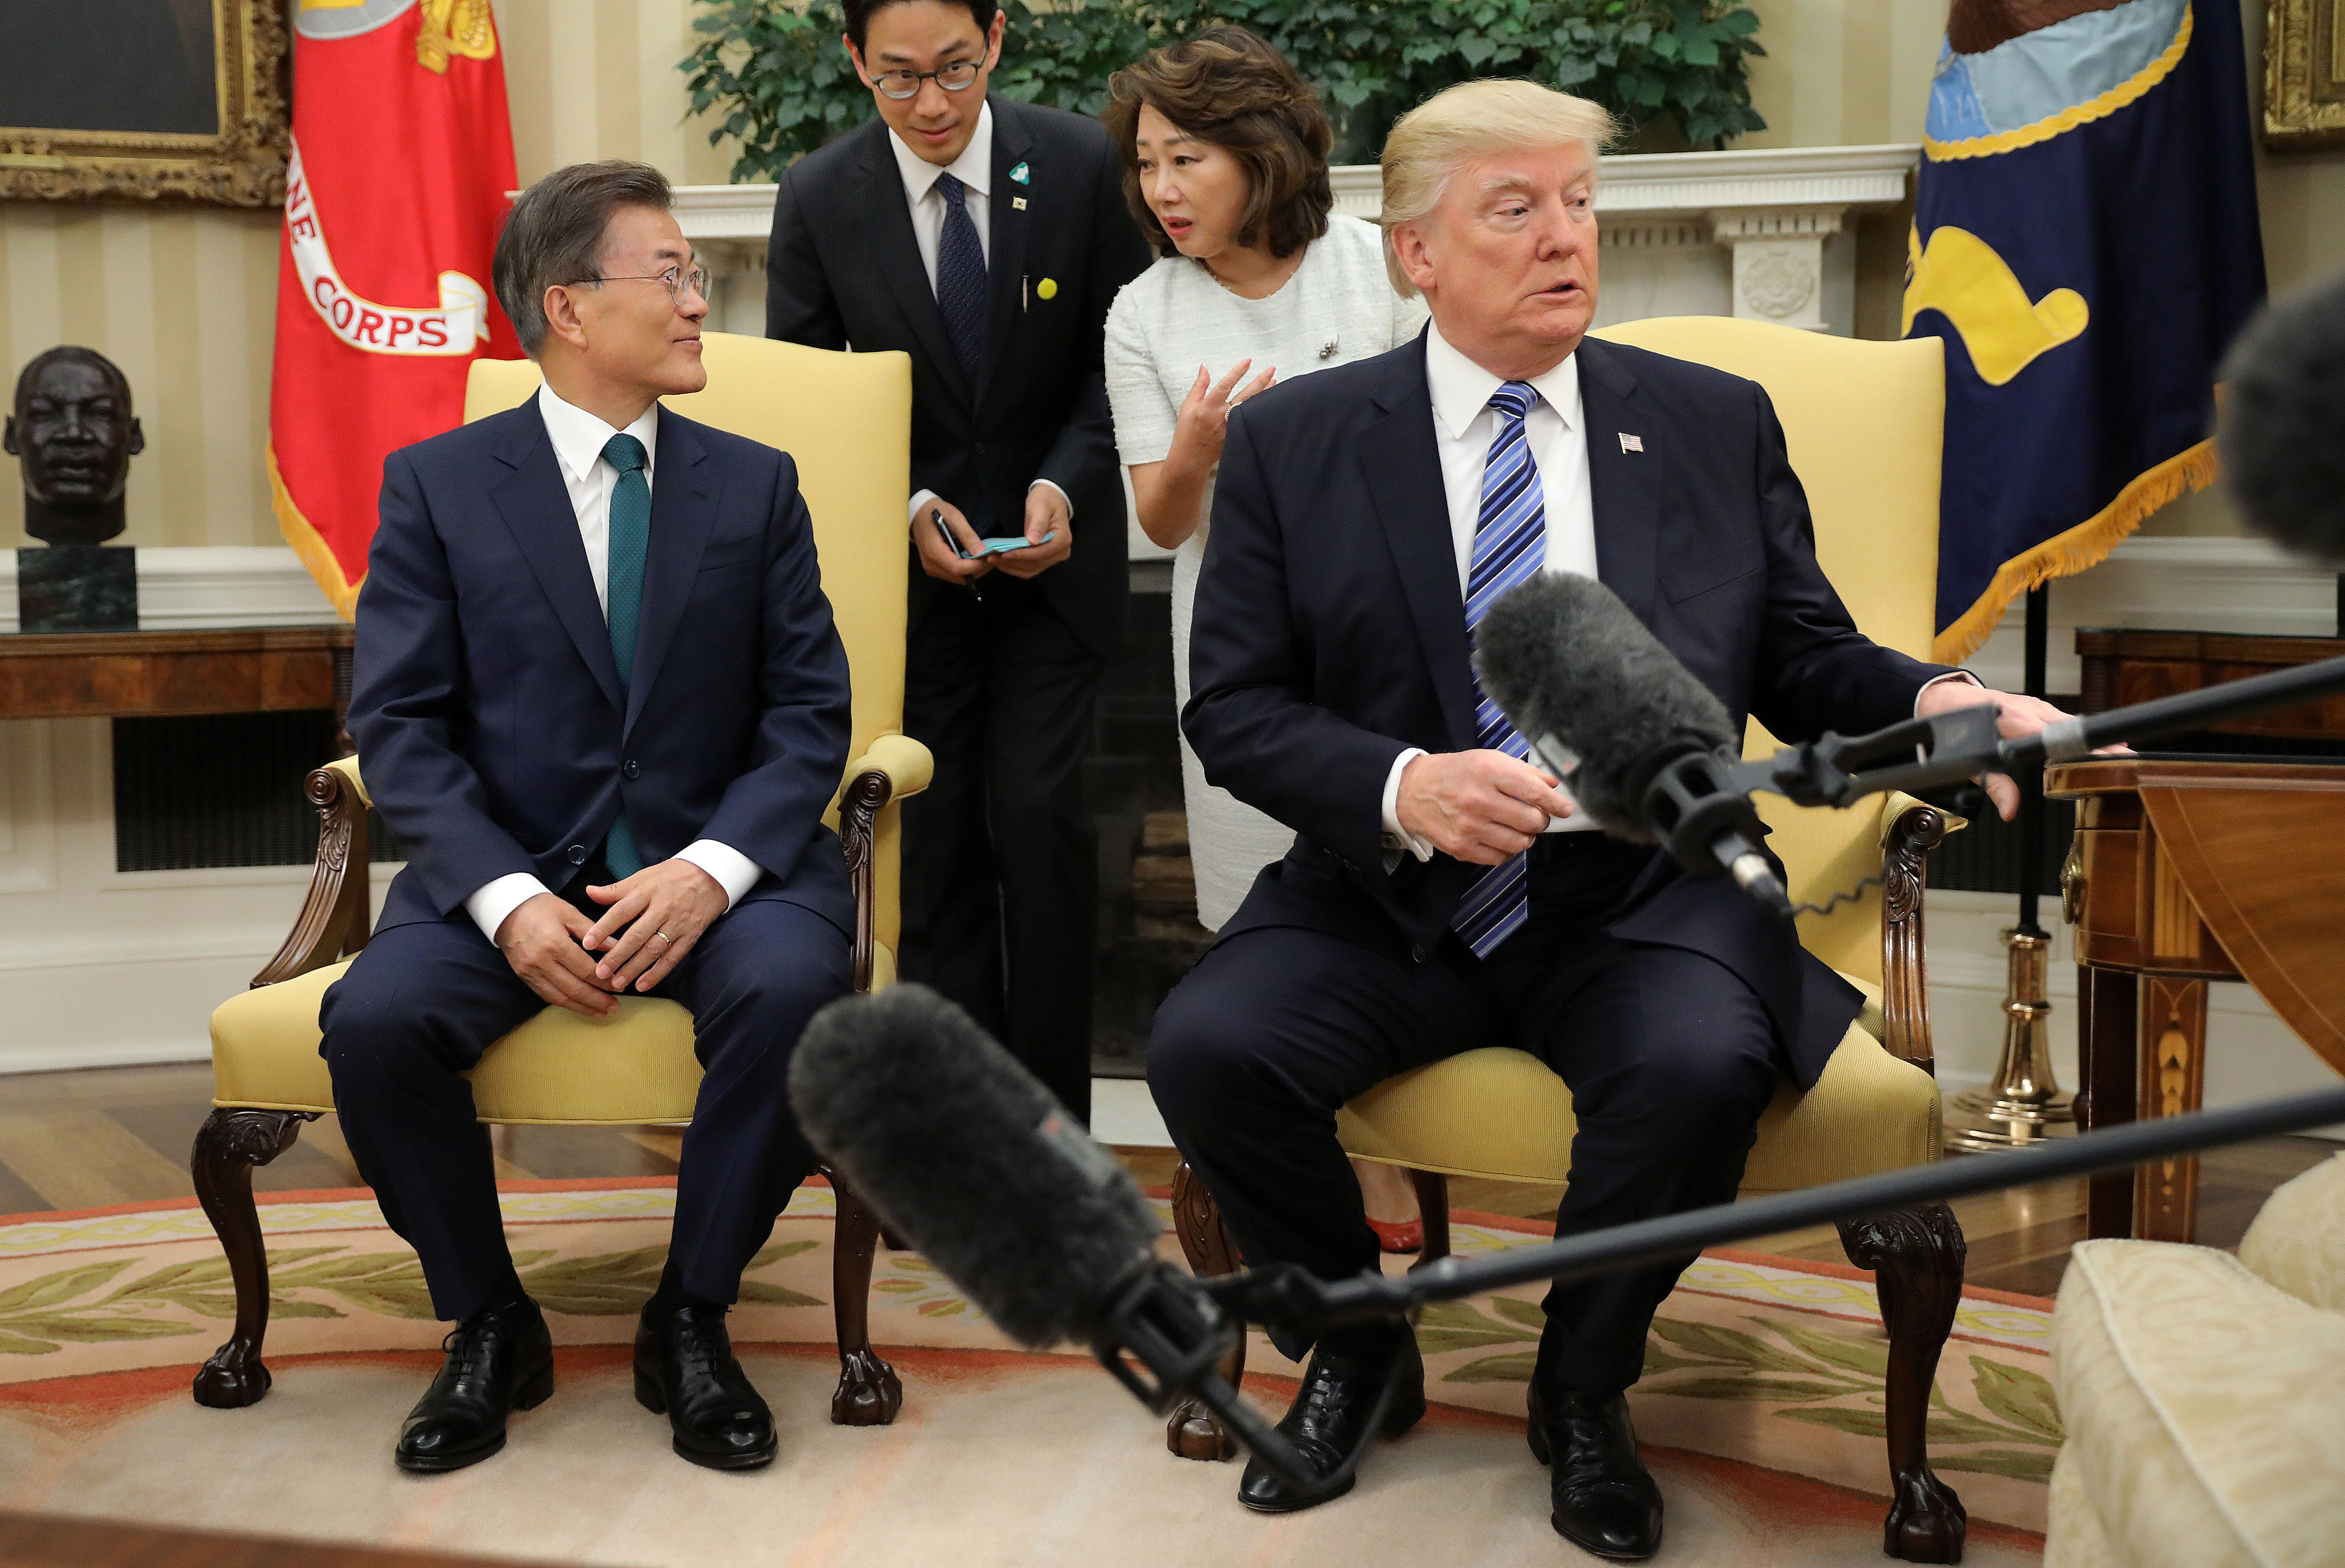 REFILE-ADDING INFORMATION U.S. President Donald Trump reacts after a lamp next to him was almost turned over during a photo spray with South Korean President Moon Jae-in in the Oval Office at the White House in Washington, U.S., June 30, 2017. REUTERS/Carlos Barria